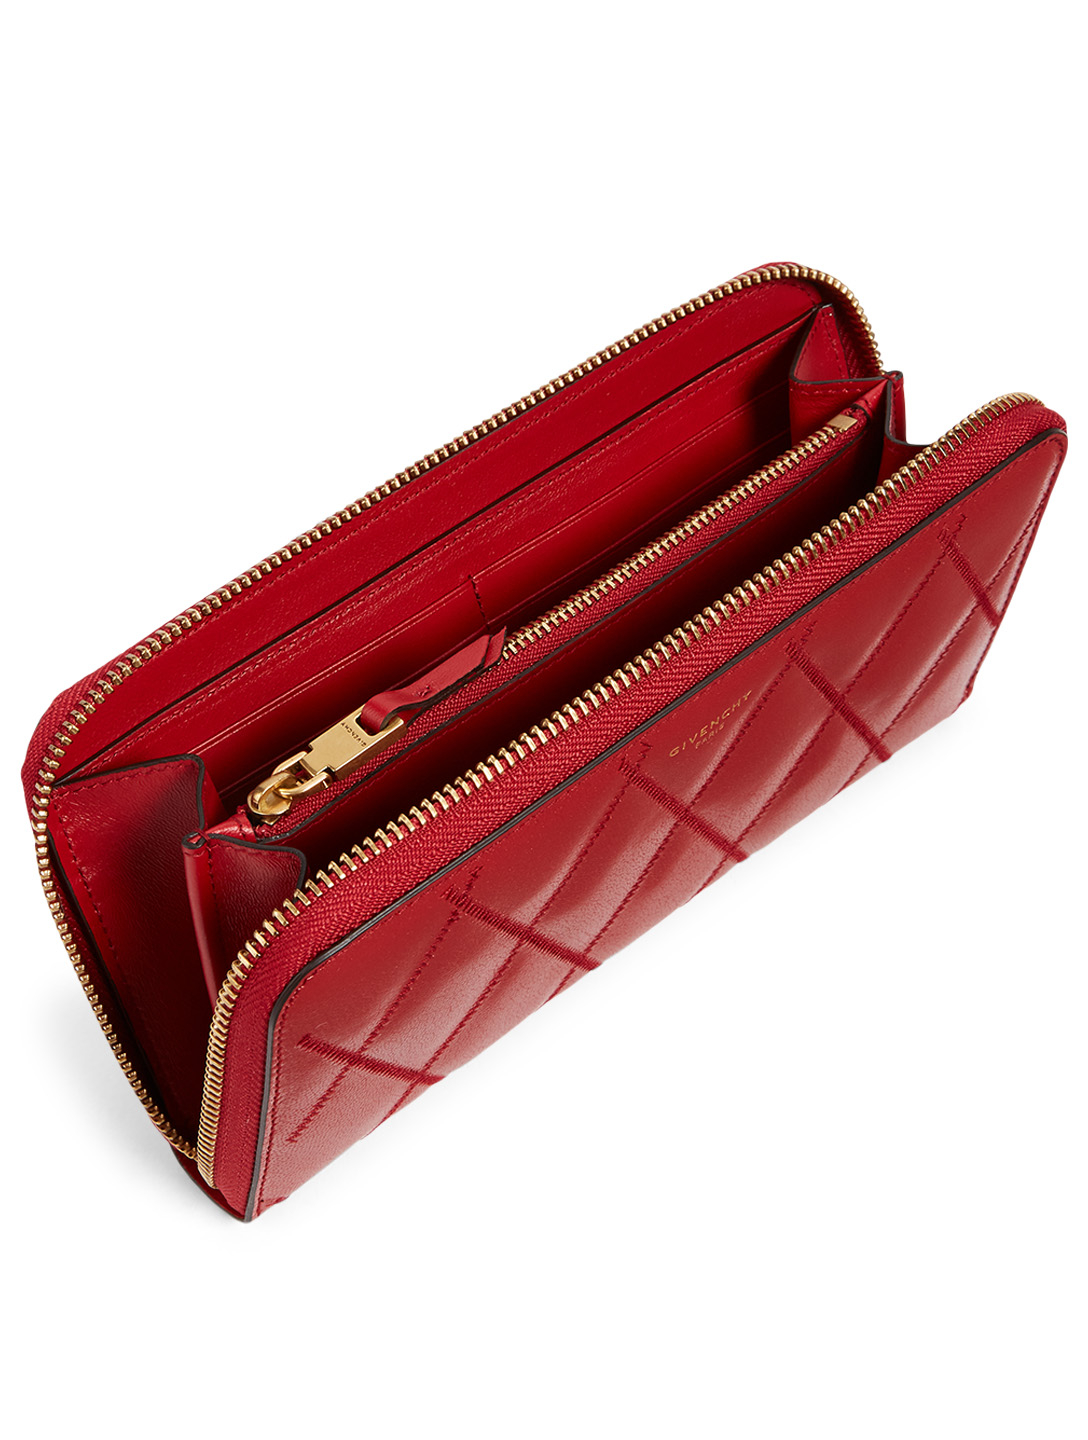 GIVENCHY GV3 Leather Continental Wallet Women's Red